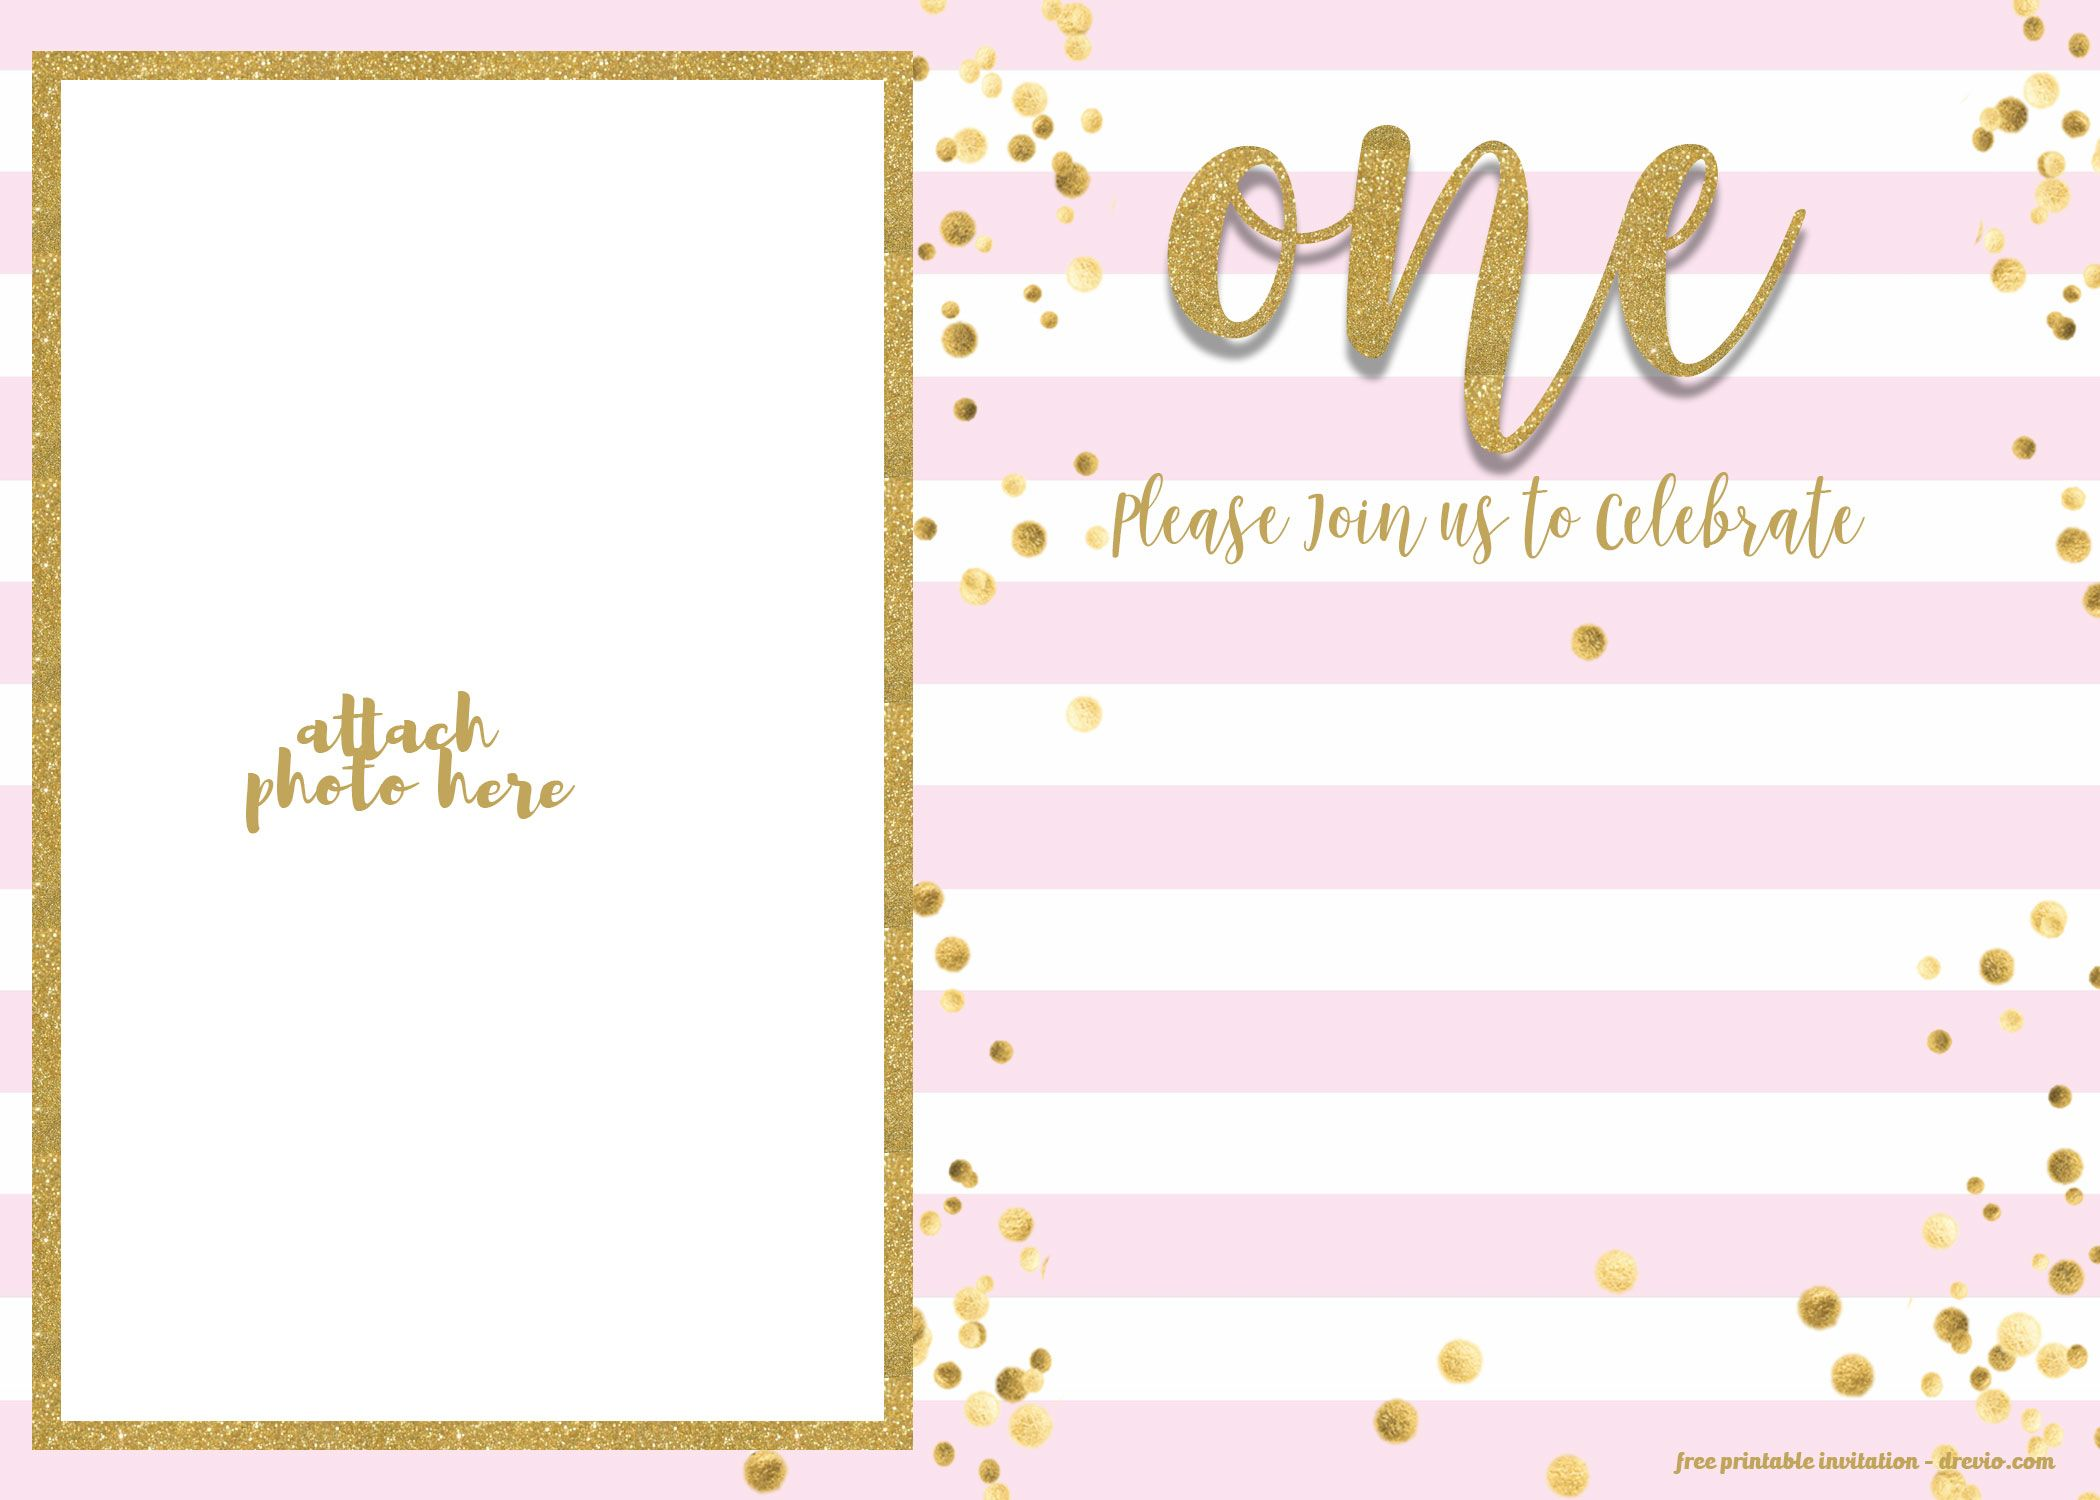 Get FREE 1st Birthday Invitation Pink And Gold Glitter Template